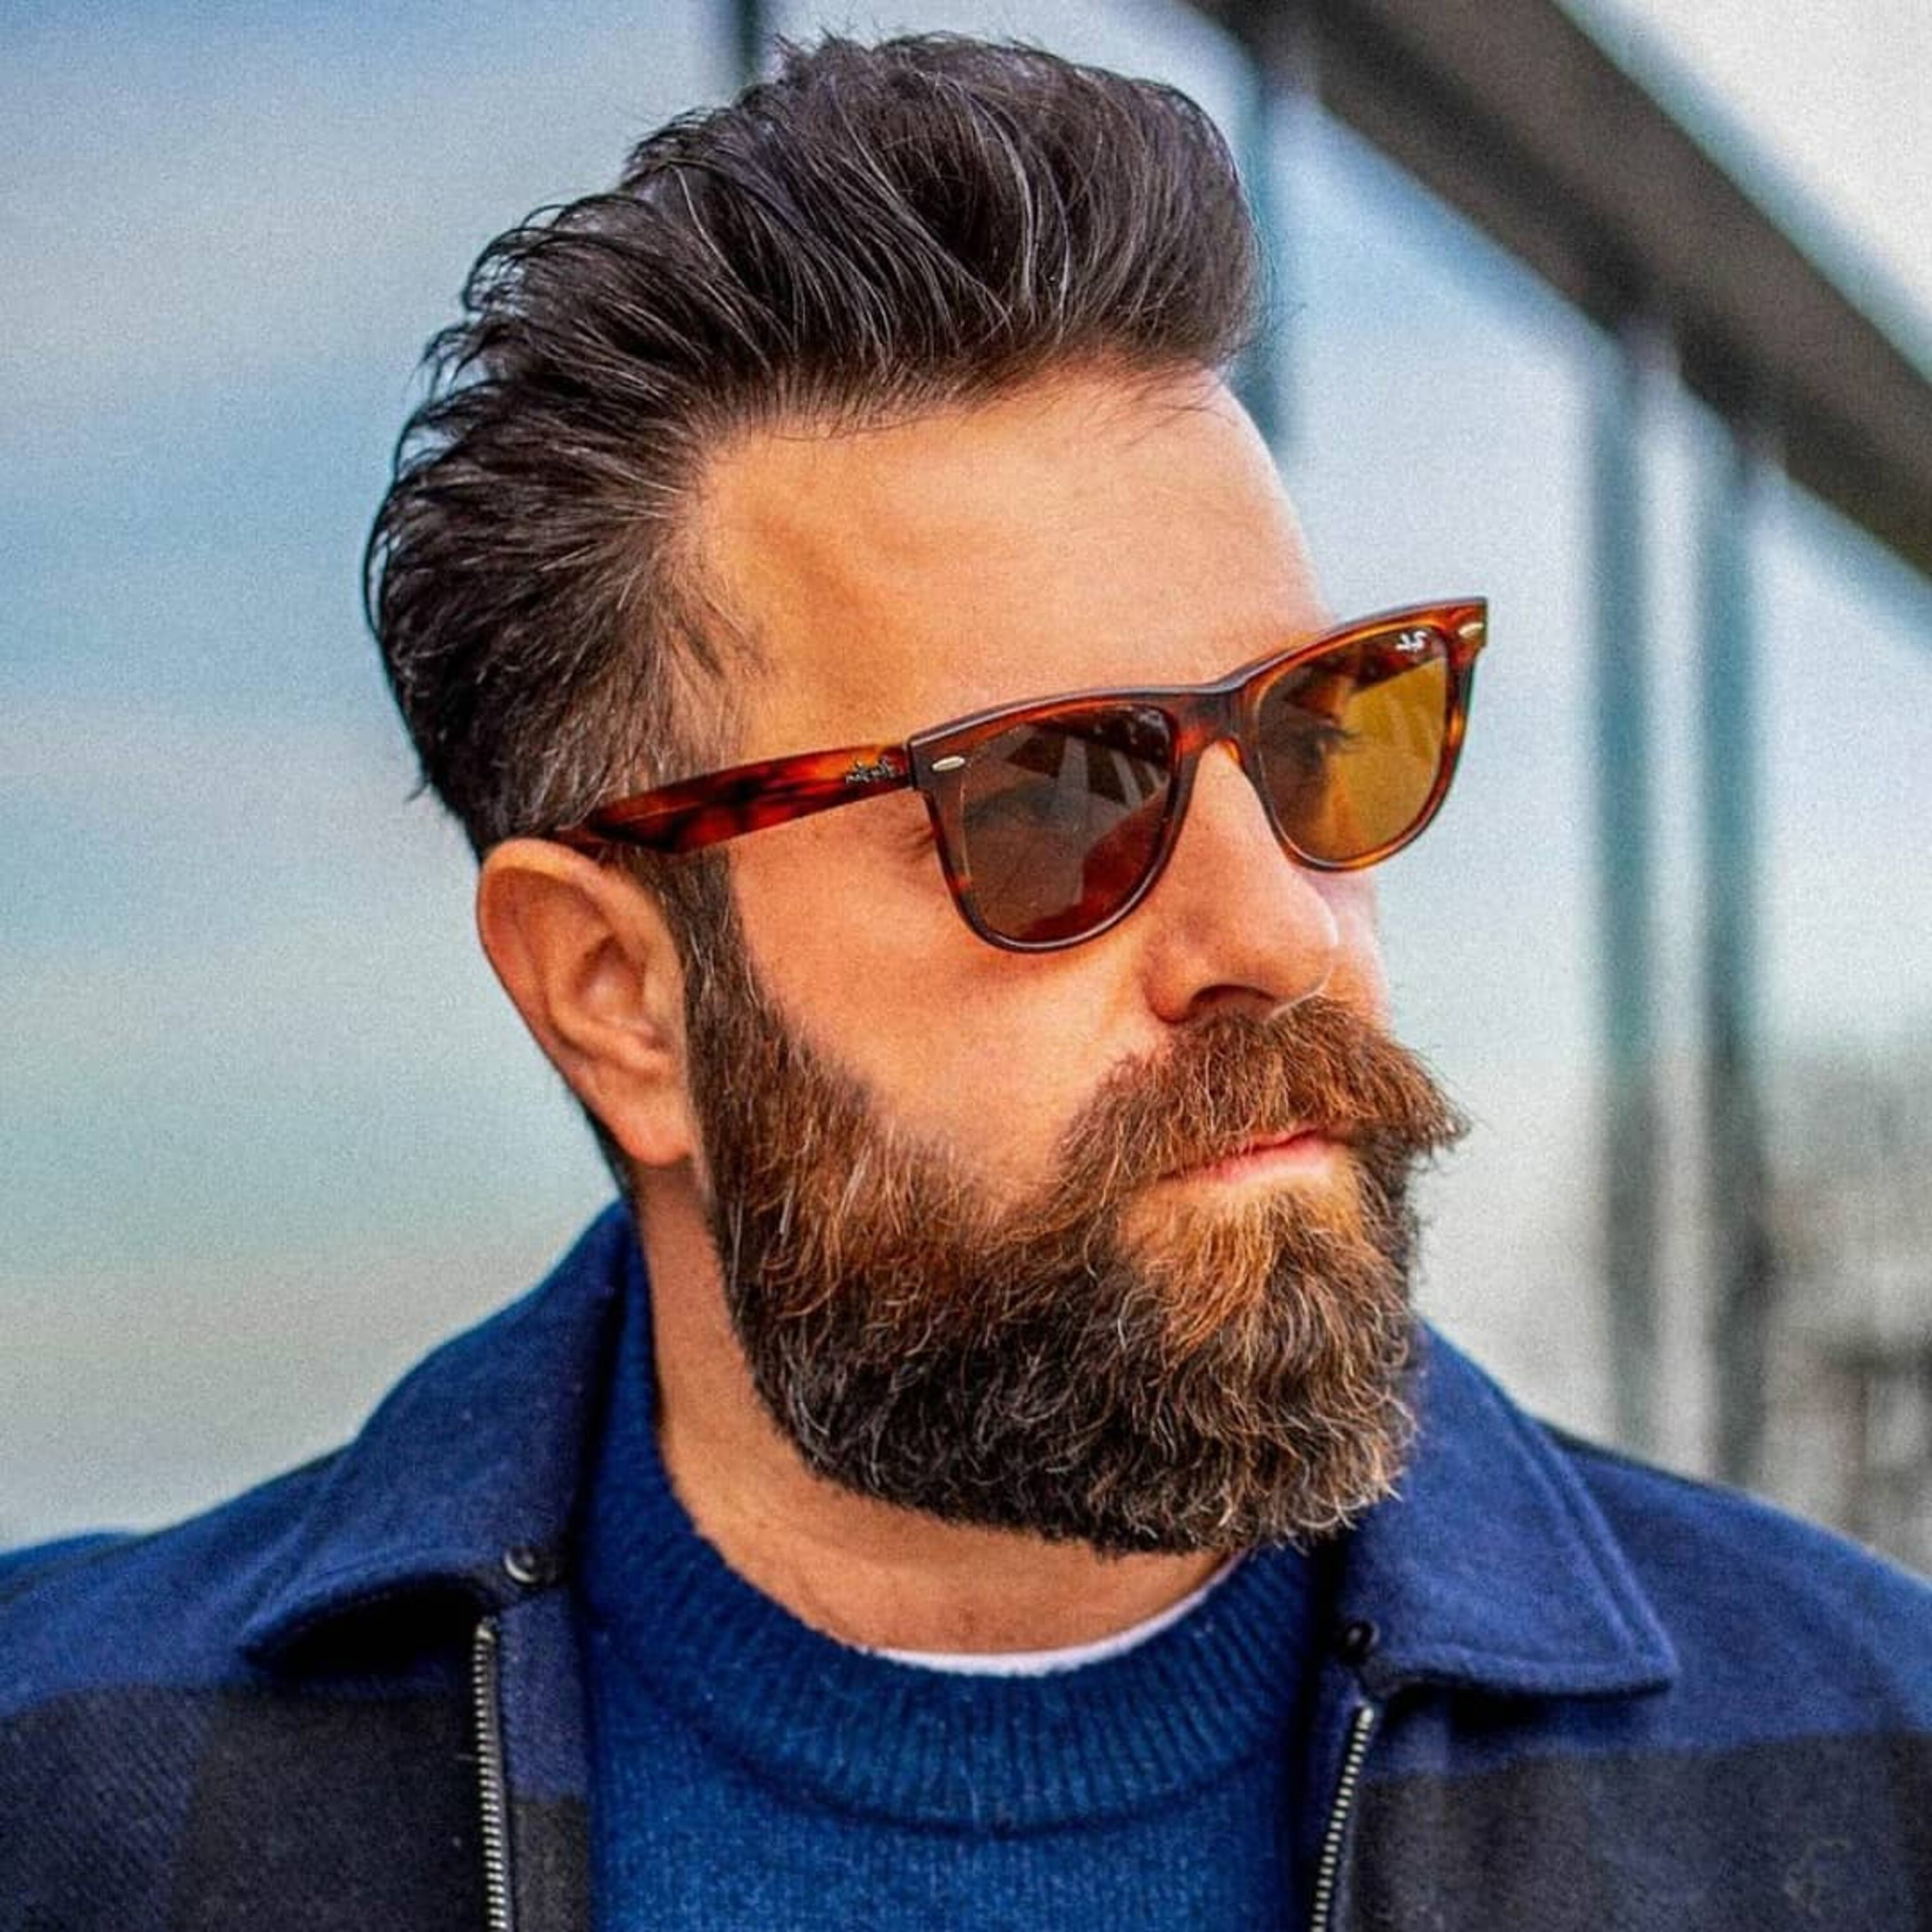 A classic short beard style for males.